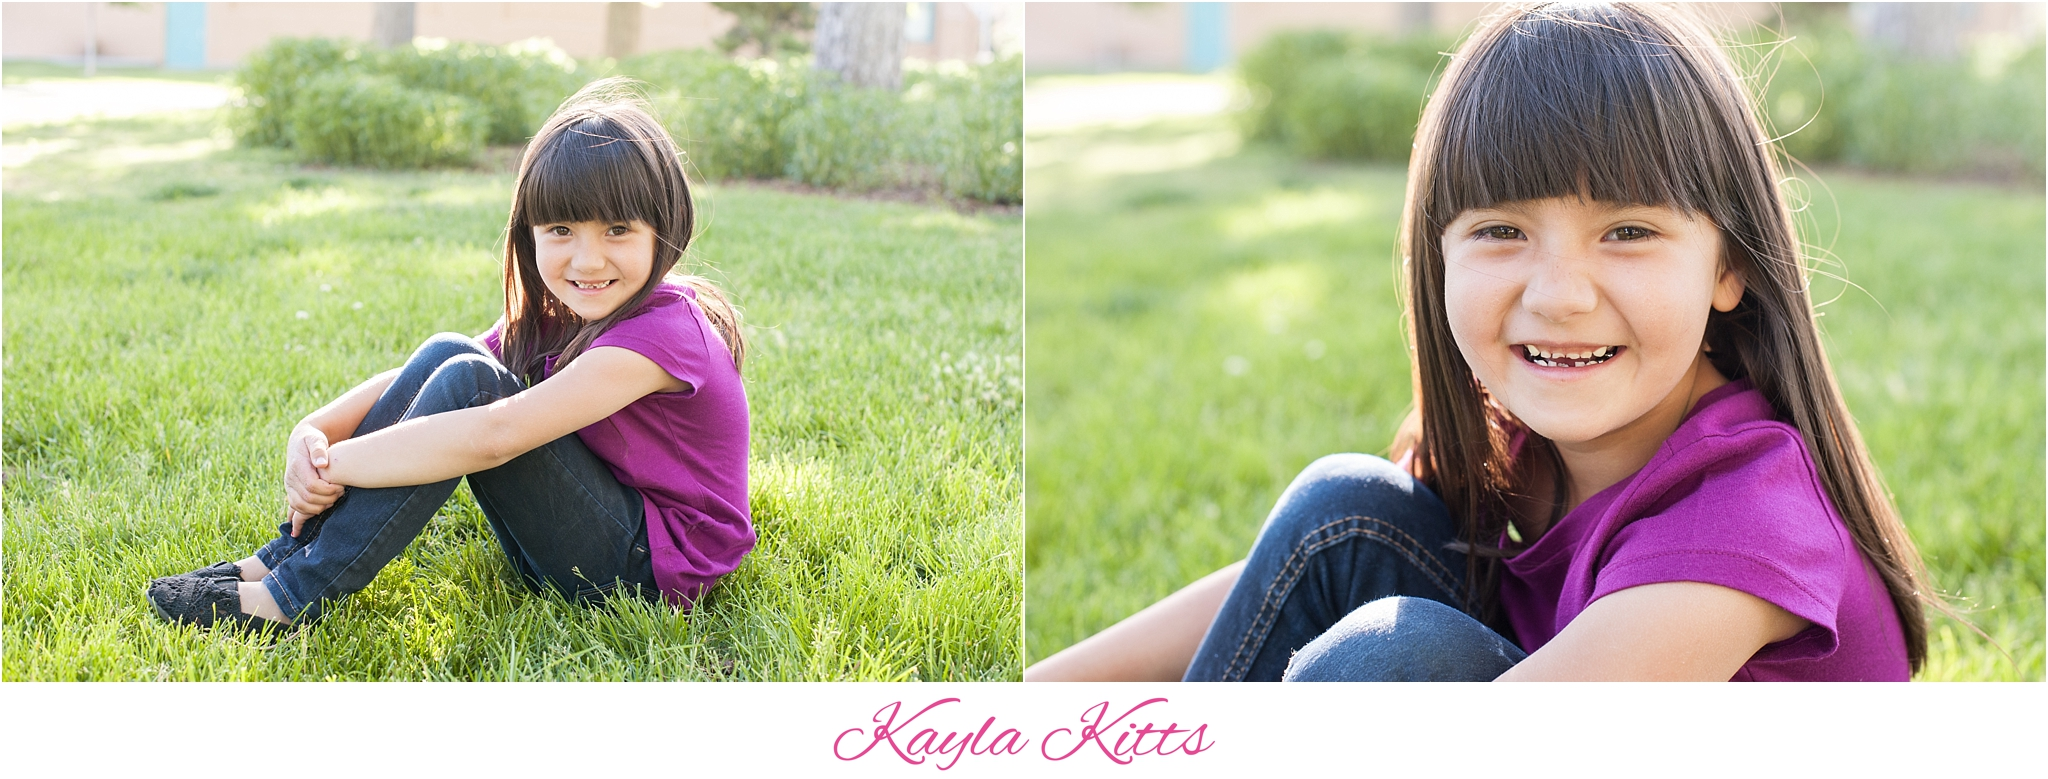 kayla kitts photography - albuquerque wedding photographer - albuquerque engagement photographer - nm wedding - albuquerque wedding - nm wedding - unm engagement - bosque engagement session_0006.jpg